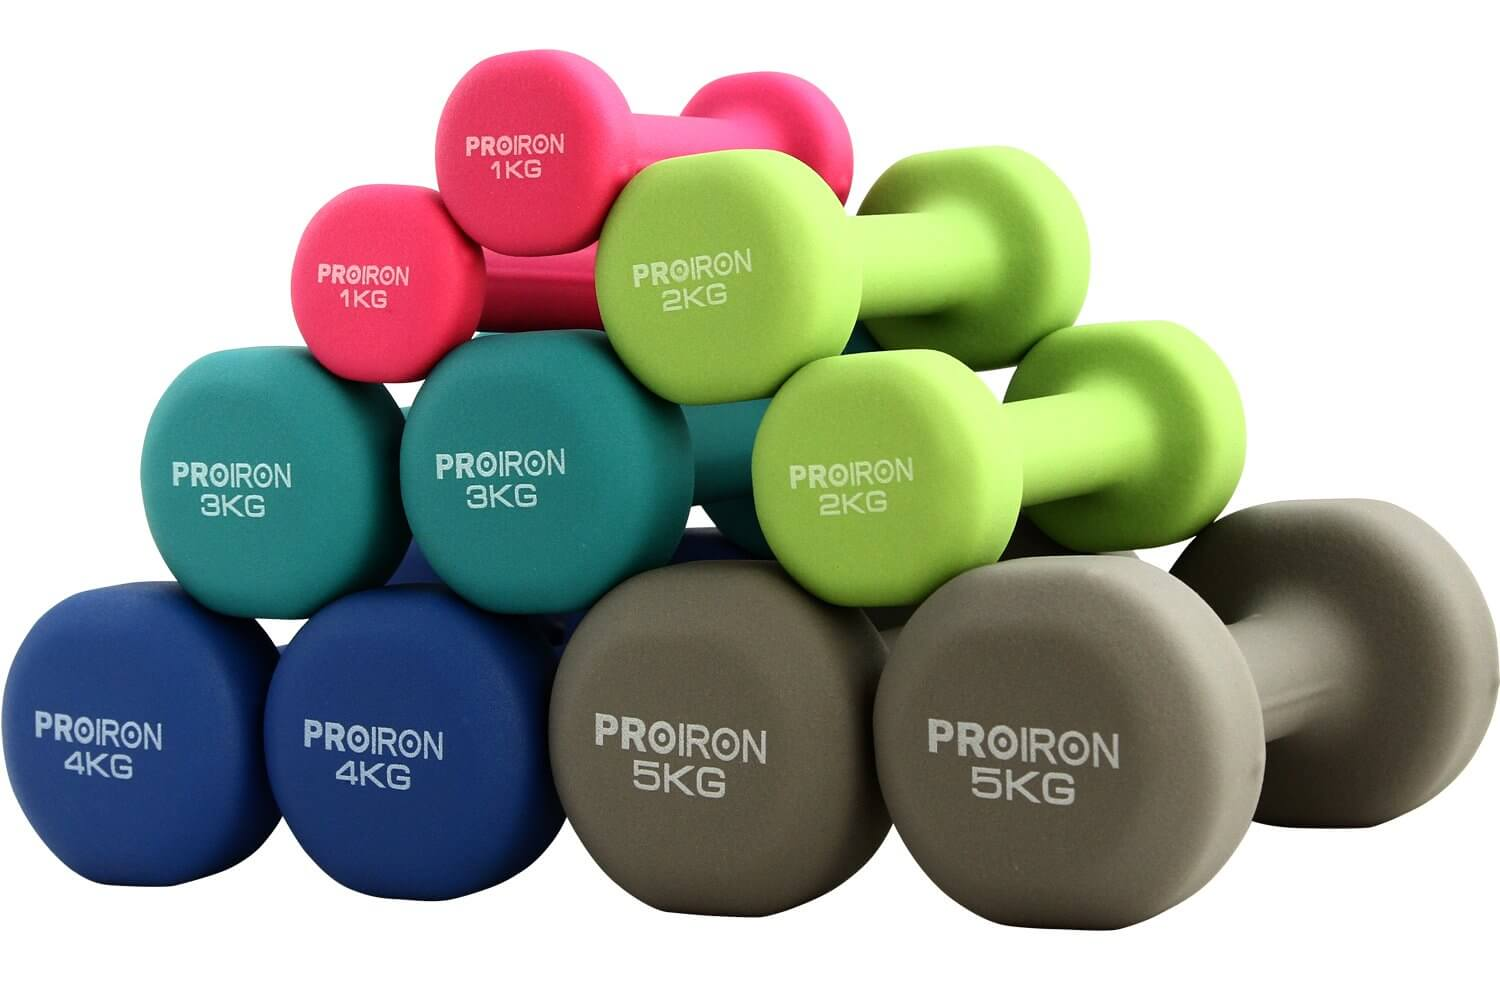 PROIRON Neoprene Dumbbell Weights Home Gym Exercise